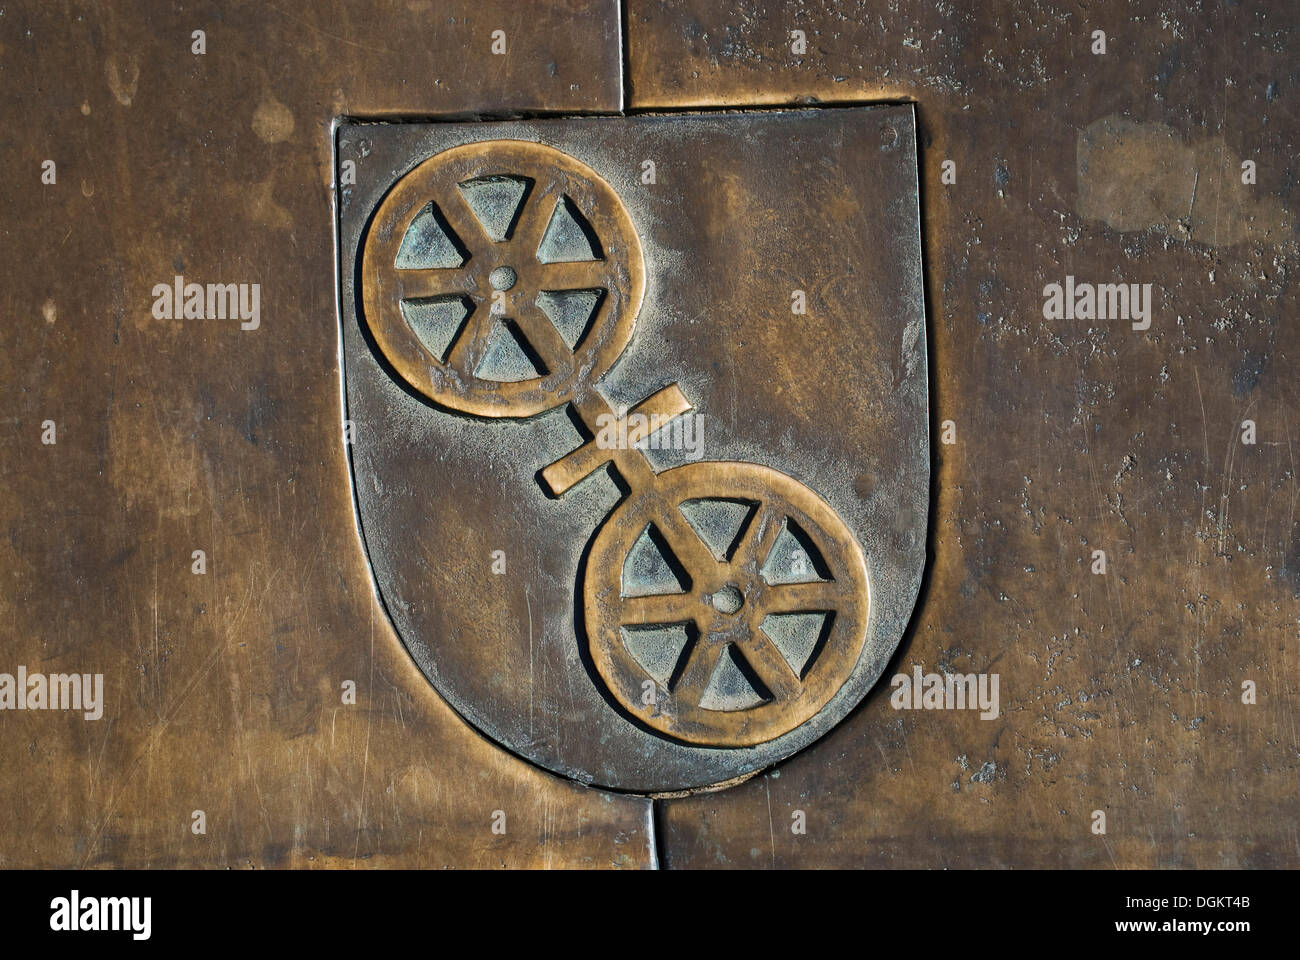 Coat of arms in bronze, Mainz, capital of Rhineland-Palatinate - Stock Image